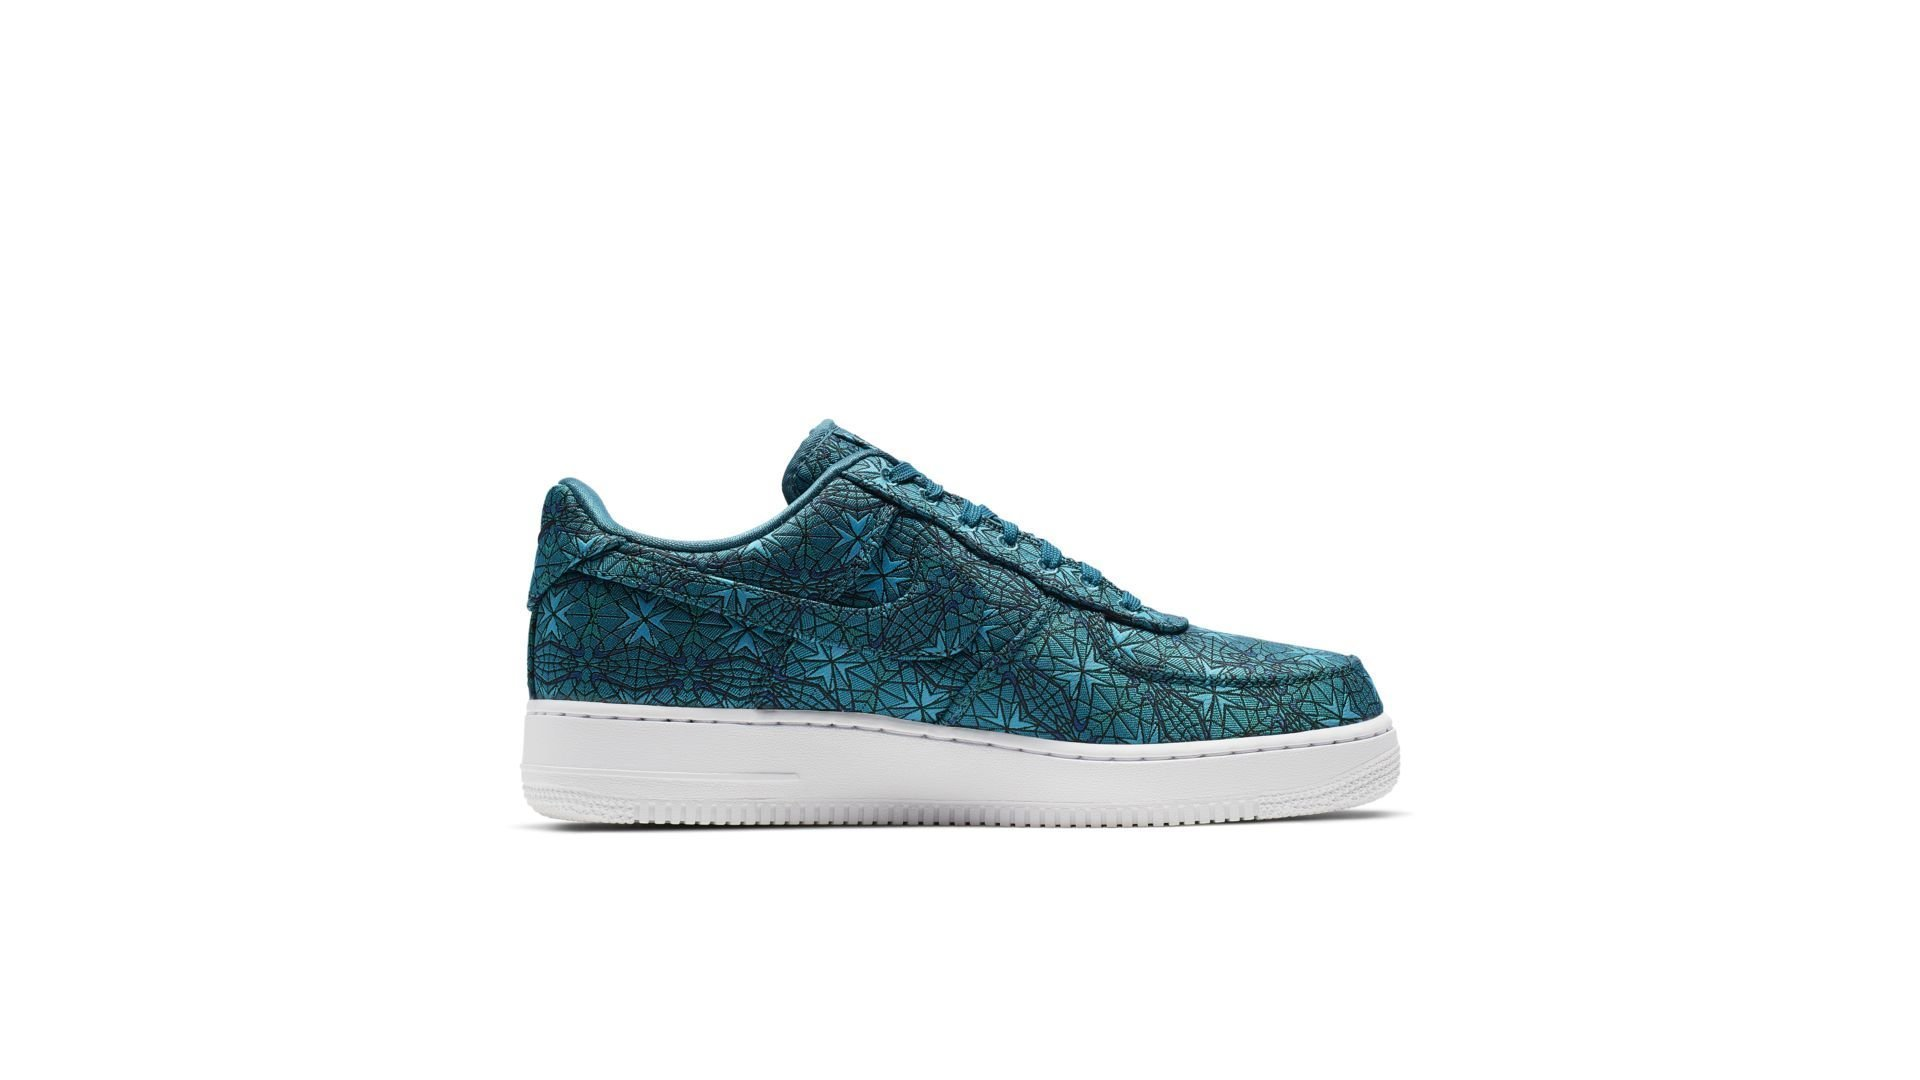 Nike Air Force 1 Low Stained Glass Green Abyss (AT4144-300)